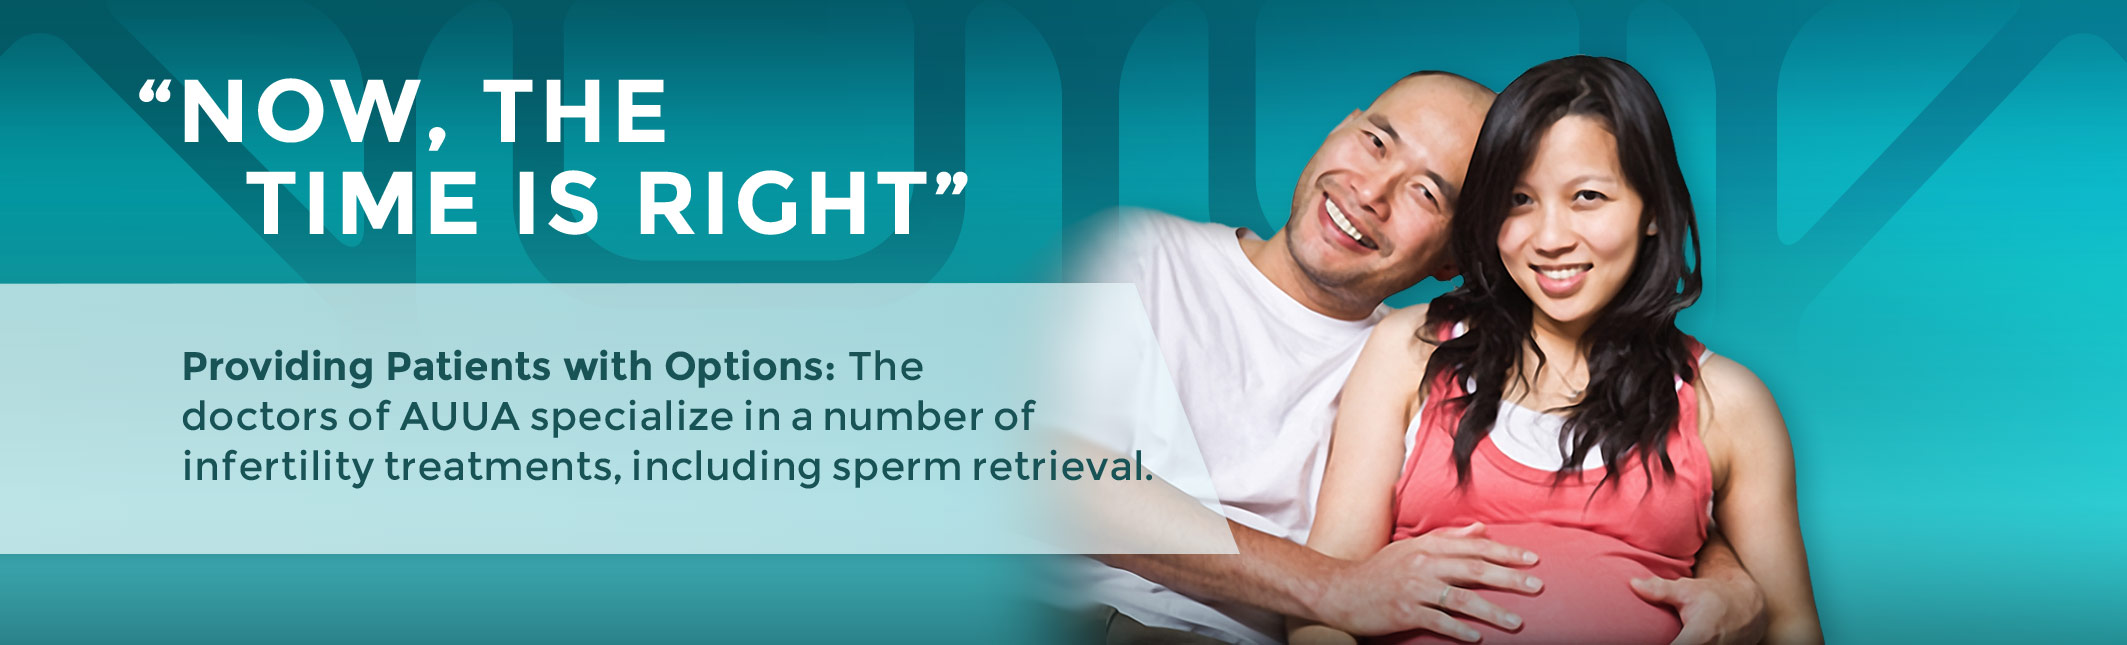 The doctors of AUUA specialize in a number of infertility treatments including sperm retrieval.